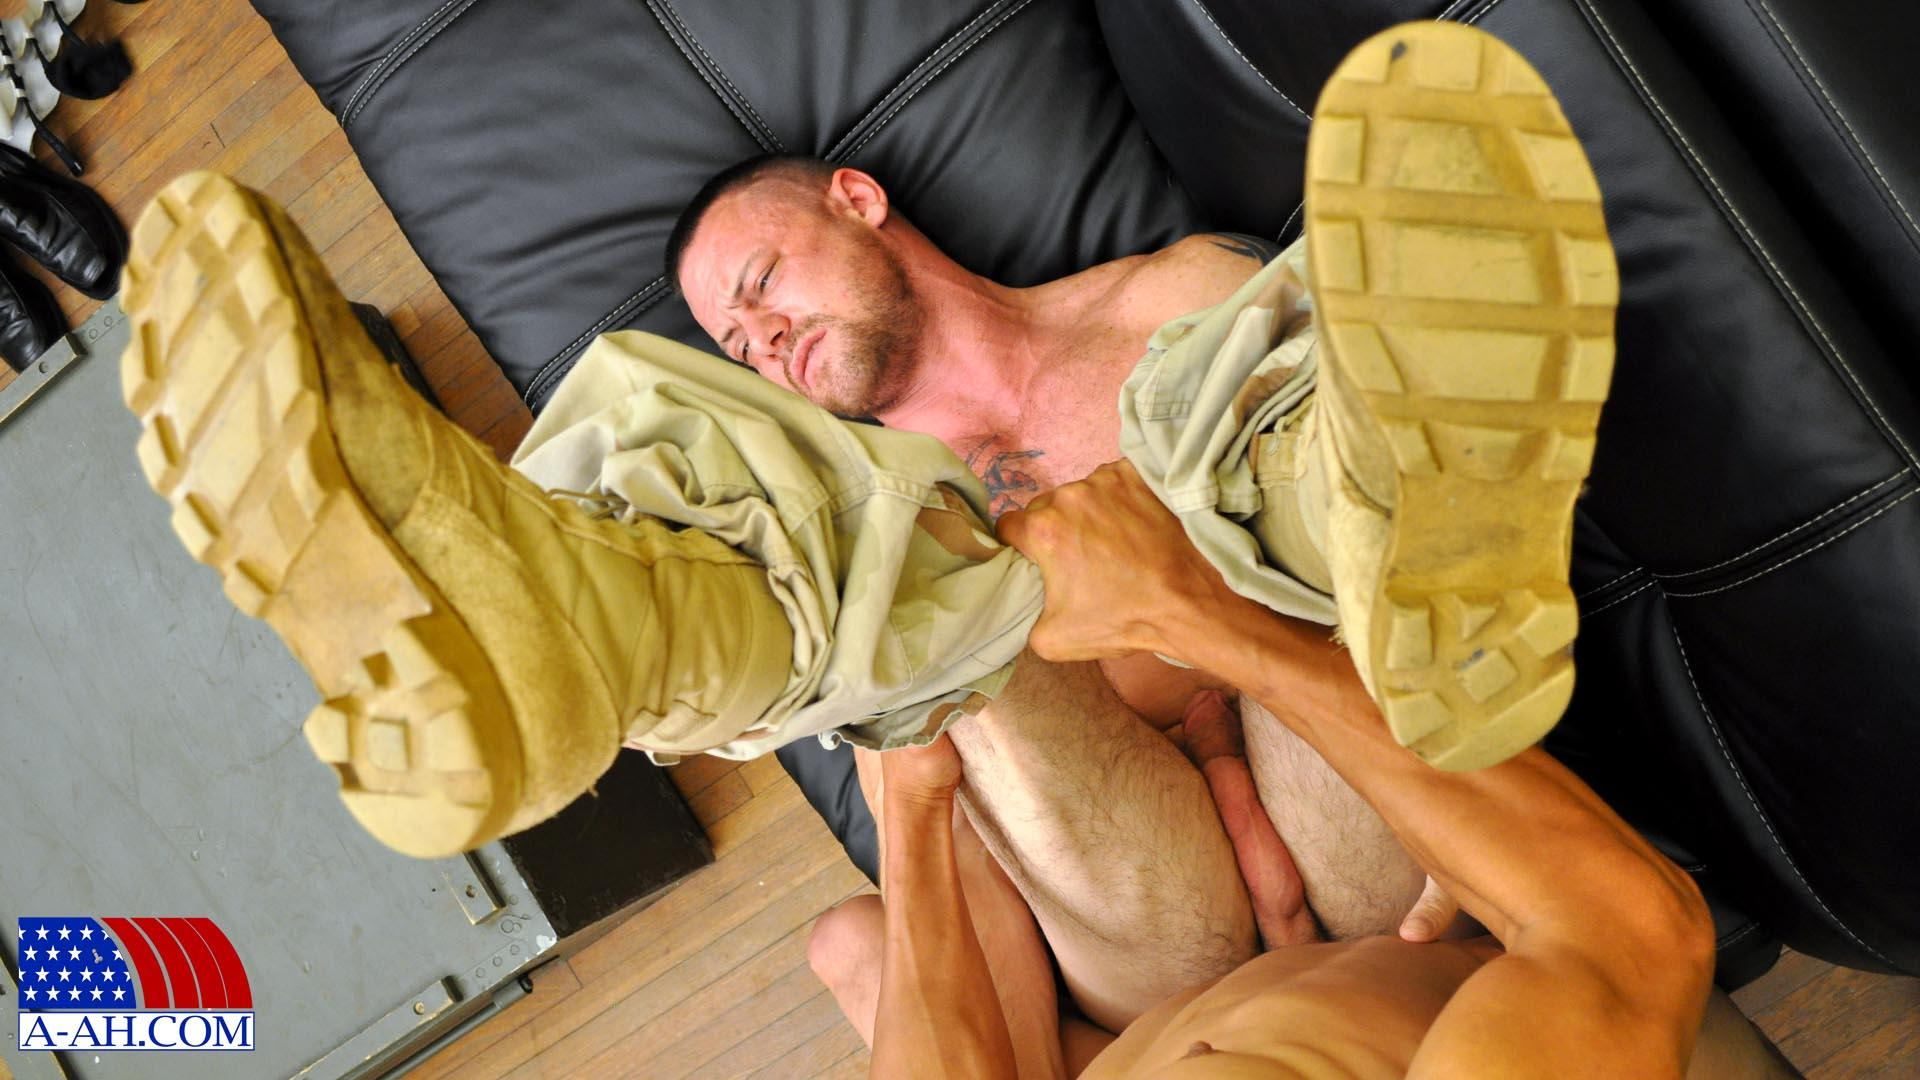 All American Heroes Navy Petty Officer Eddy fucking Army Sergeant Miles Big Uncut Cock Amateur Gay Porn 07 Navy Petty Officer Fucks A Muscle Army Sergeant